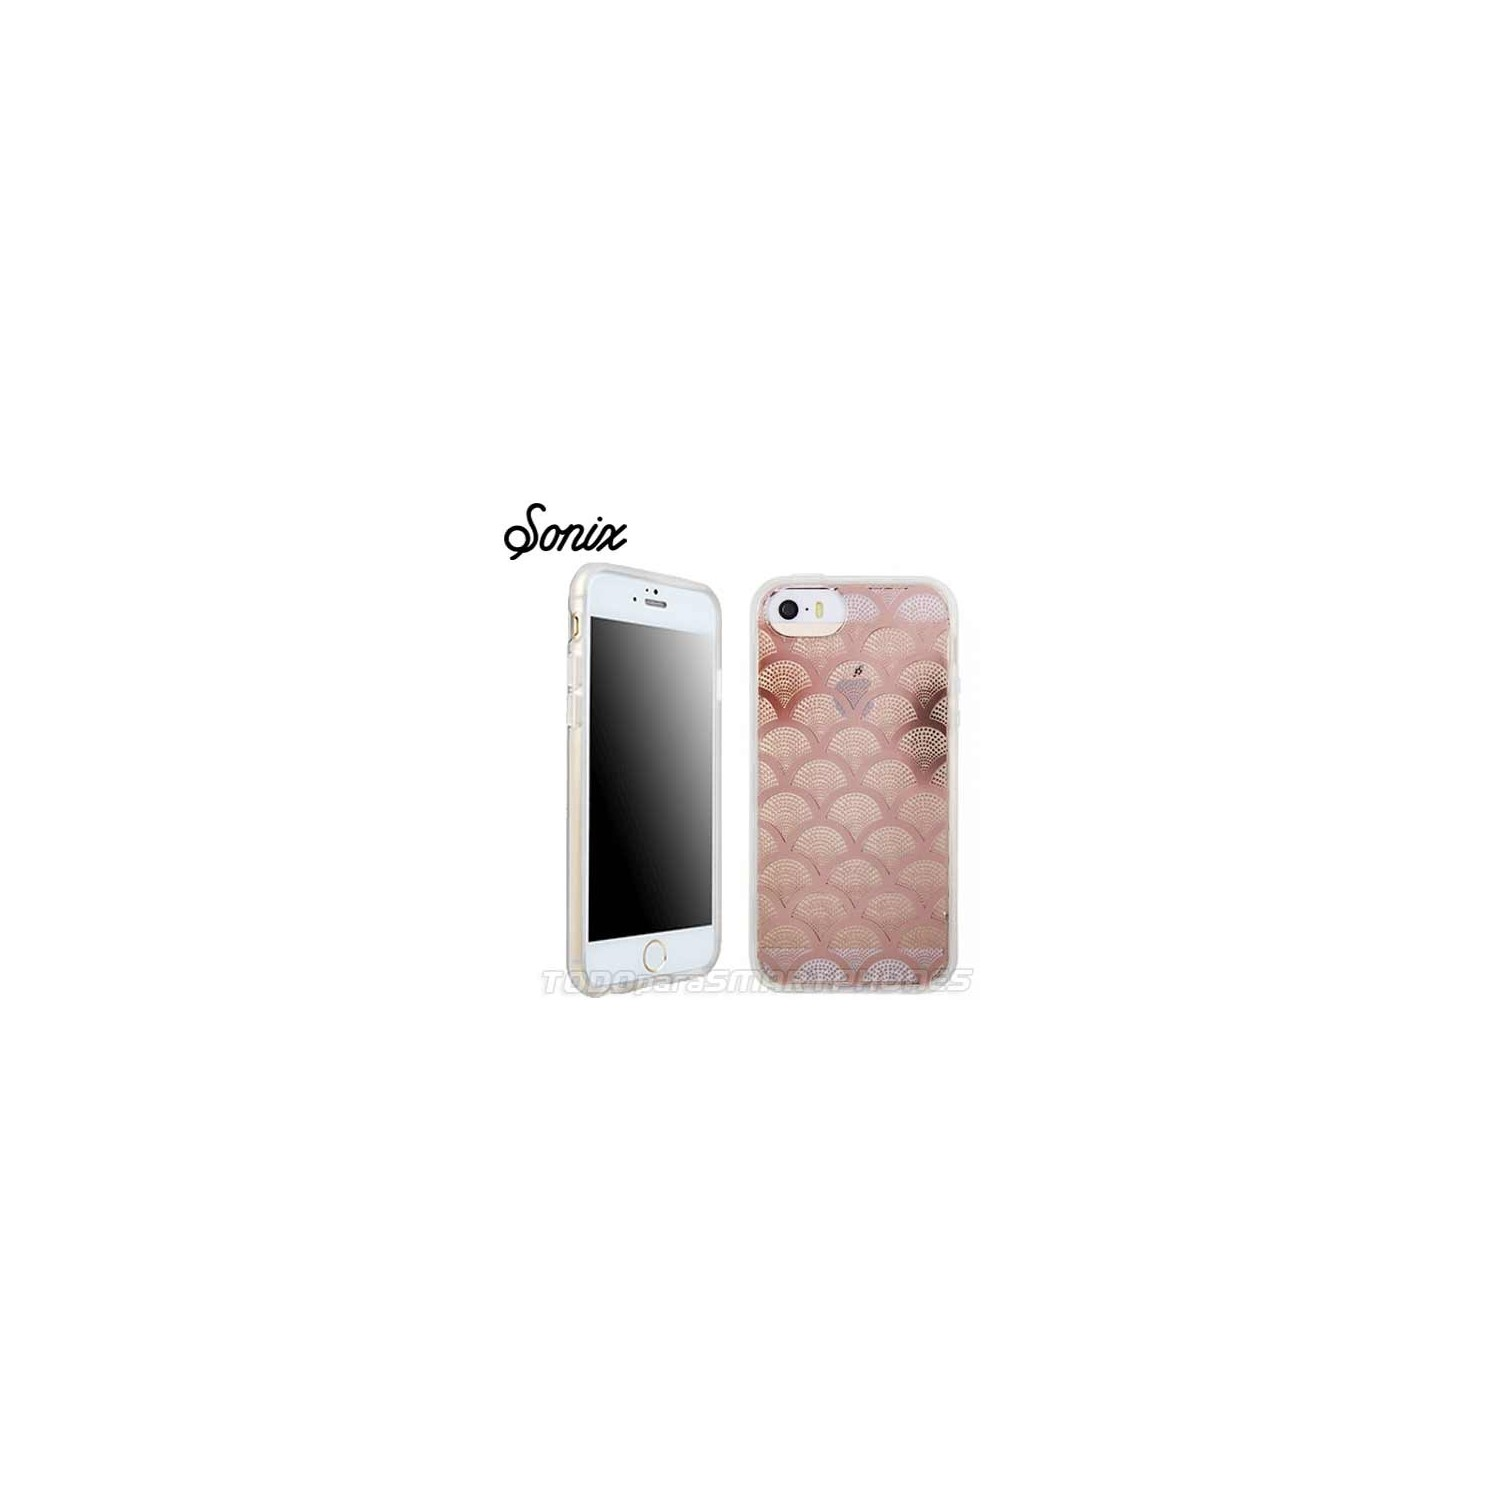 Case - SONIX for iPhone 6/6s Transparent Champagne Lace